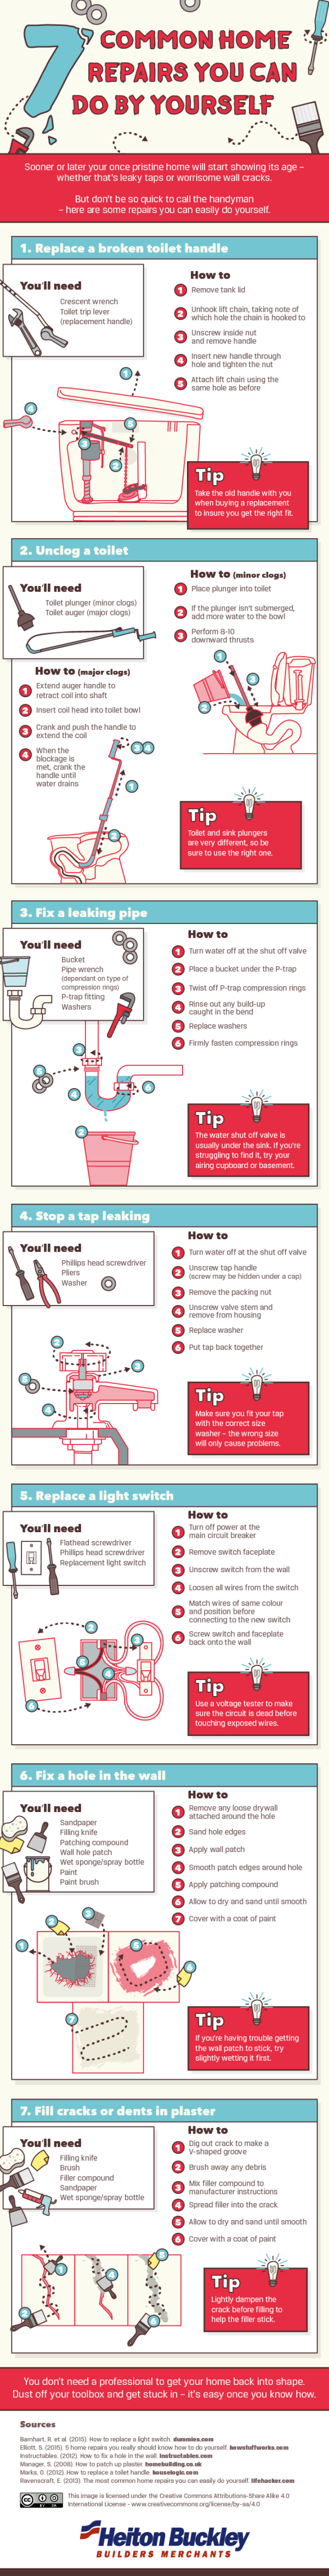 Common-home-repairs-you-can-do-yourself-V2